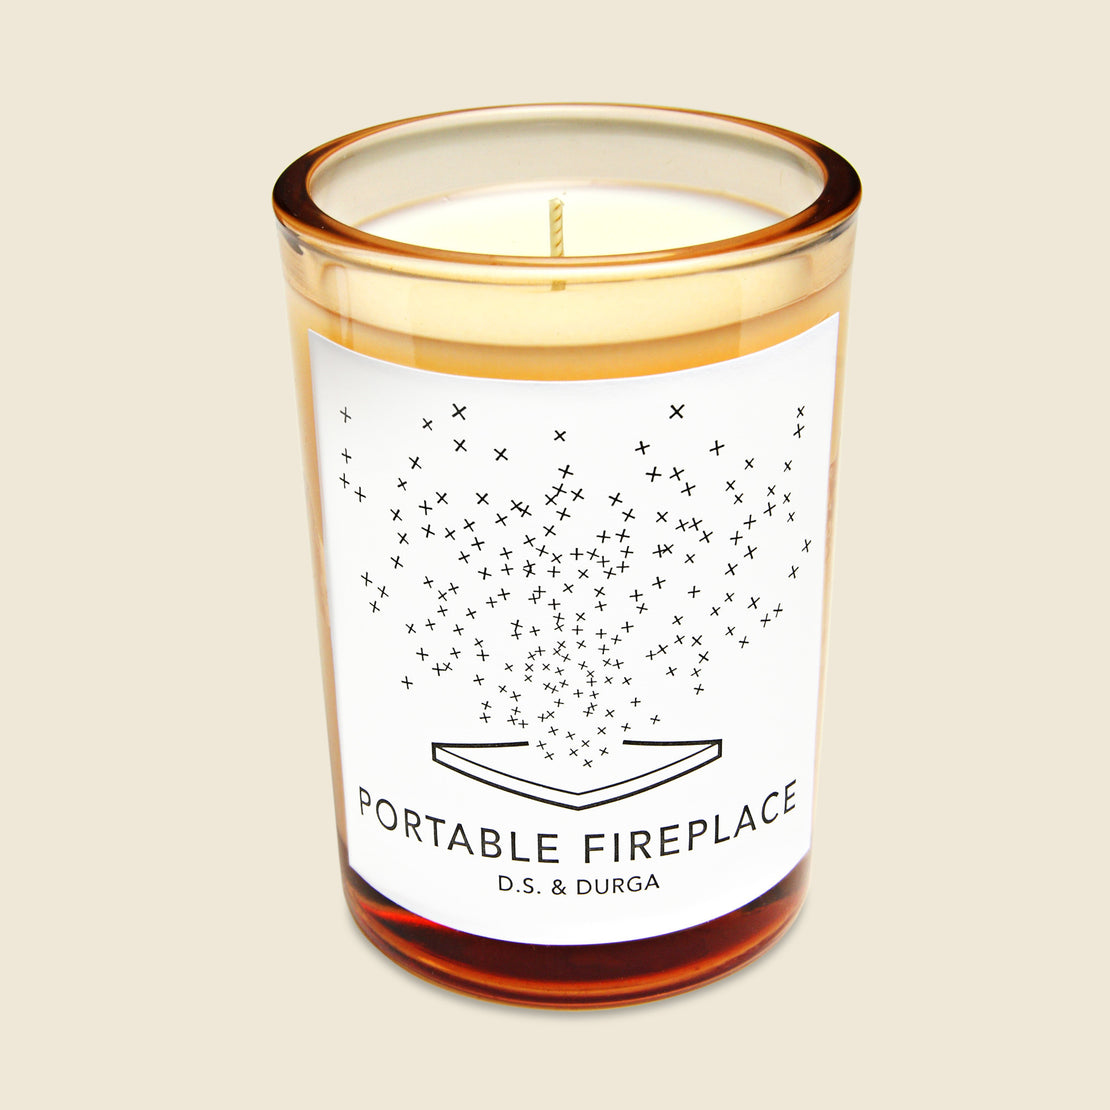 Candle - Portable Fireplace - D.S. & Durga - STAG Provisions - Gift - Candles